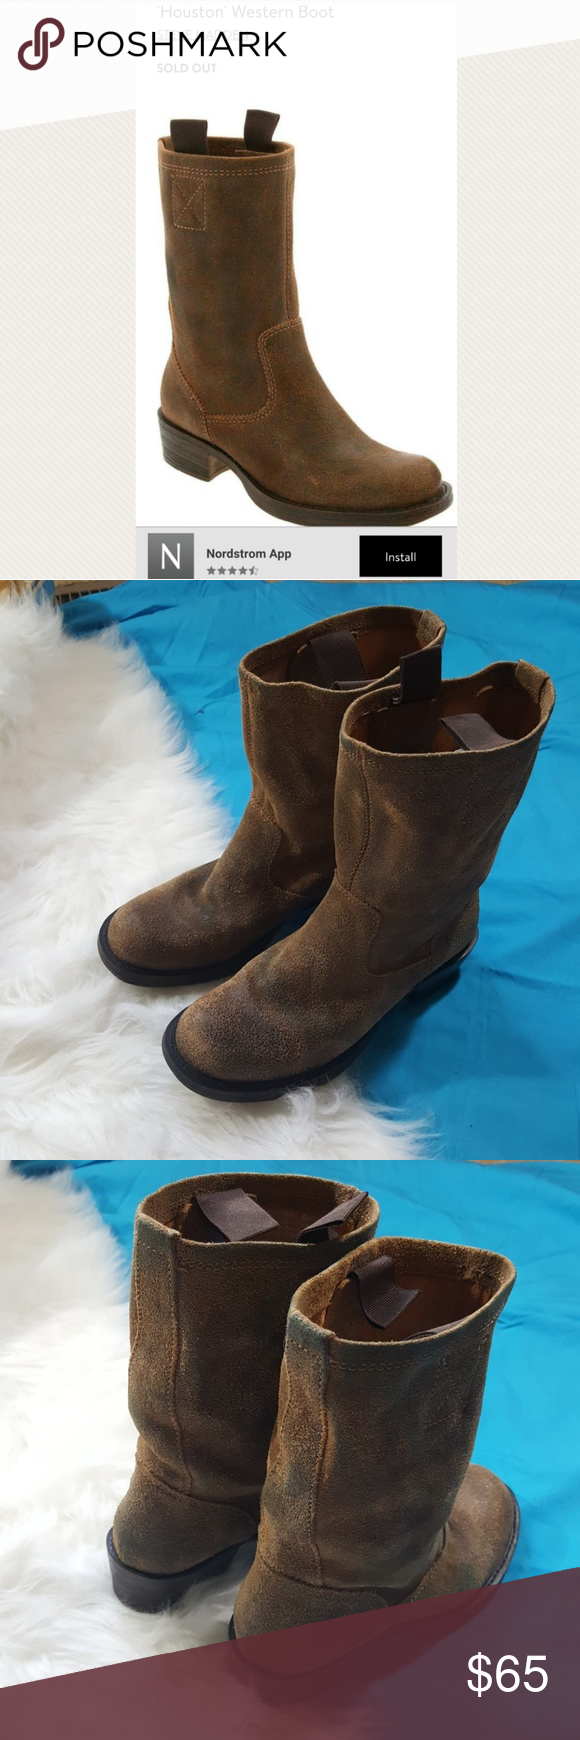 202aa28a309 6m steve madden houston western boot Nordson might be sold out but I ...